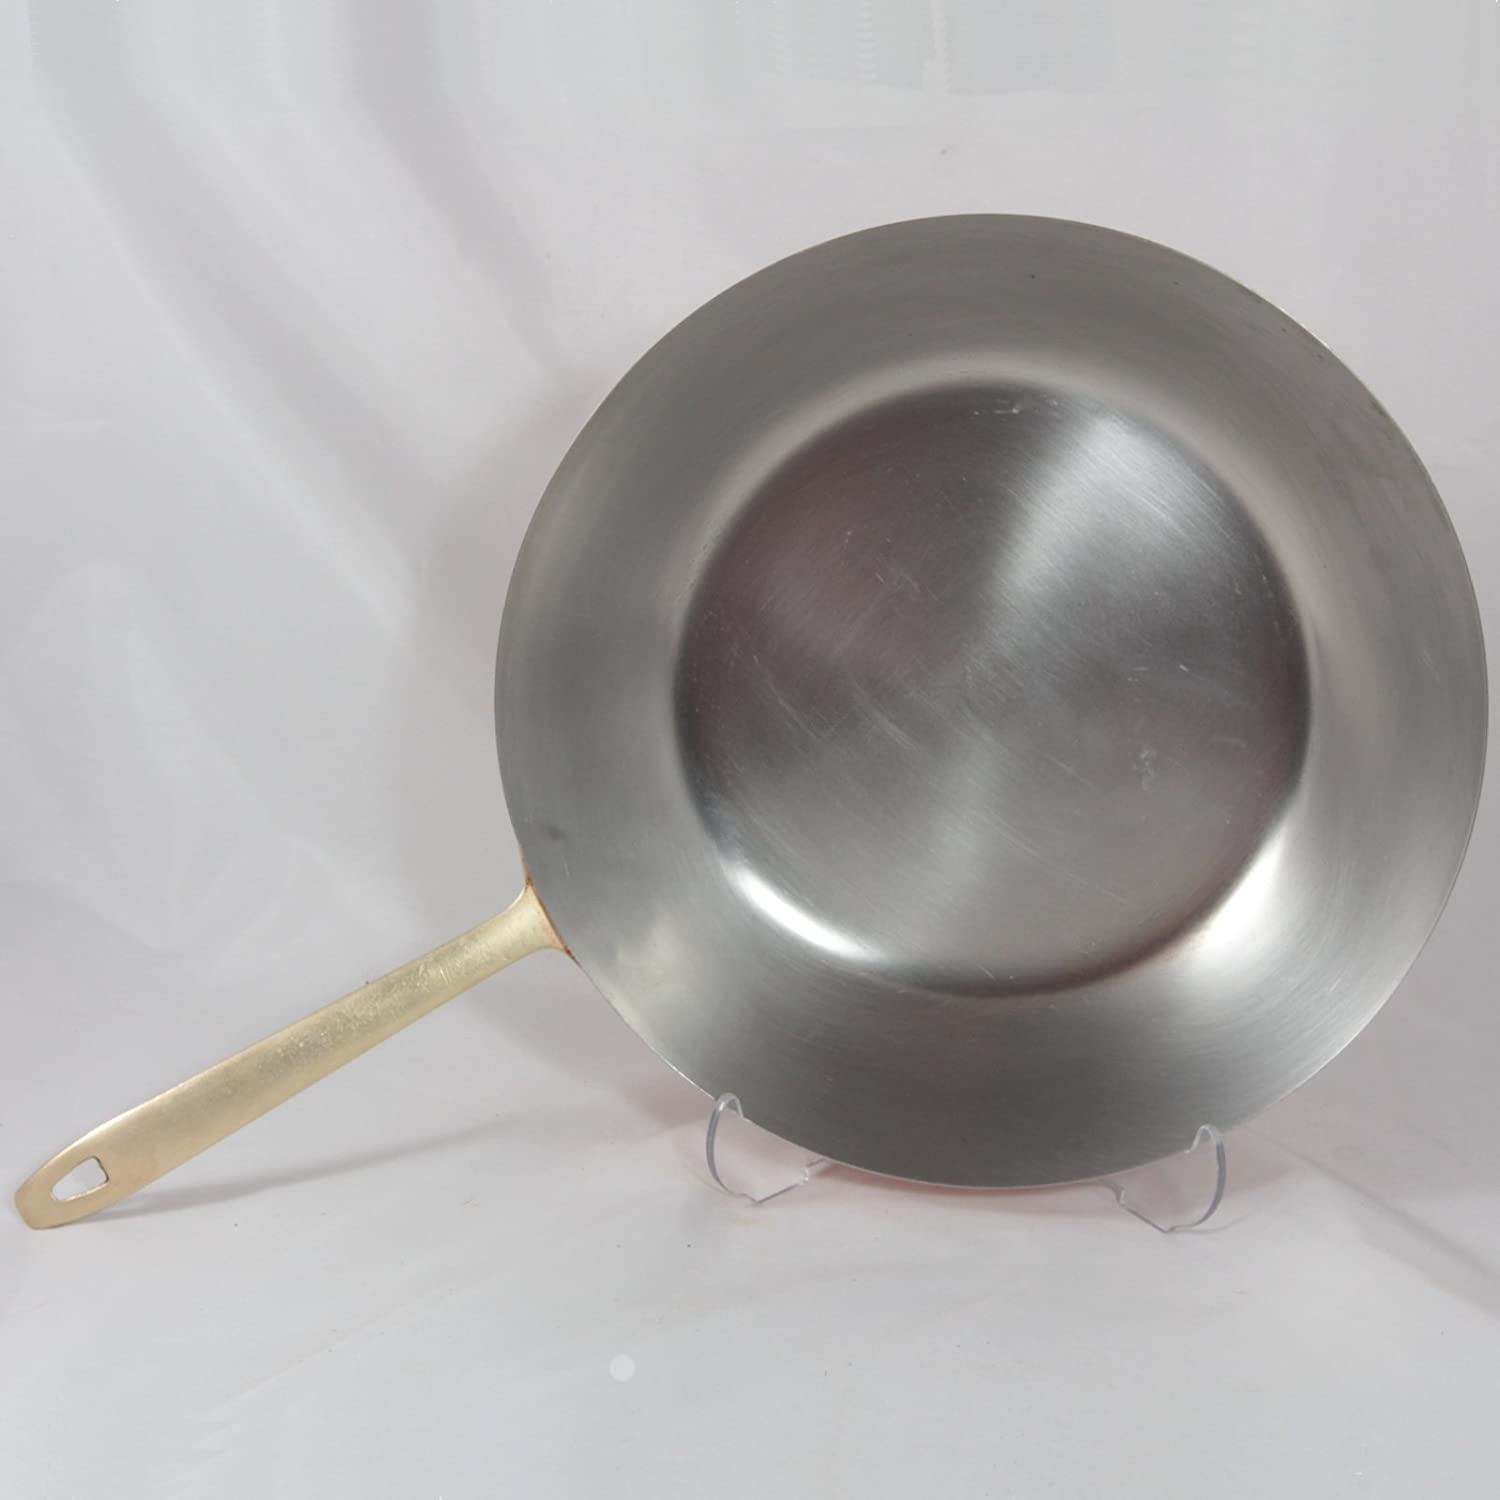 Amazon.com: Revereware Paul Revere Signature 1776/1976 Copper/Stainless Steel Skillet 10 1/2 Inch: Pans: Kitchen & Dining